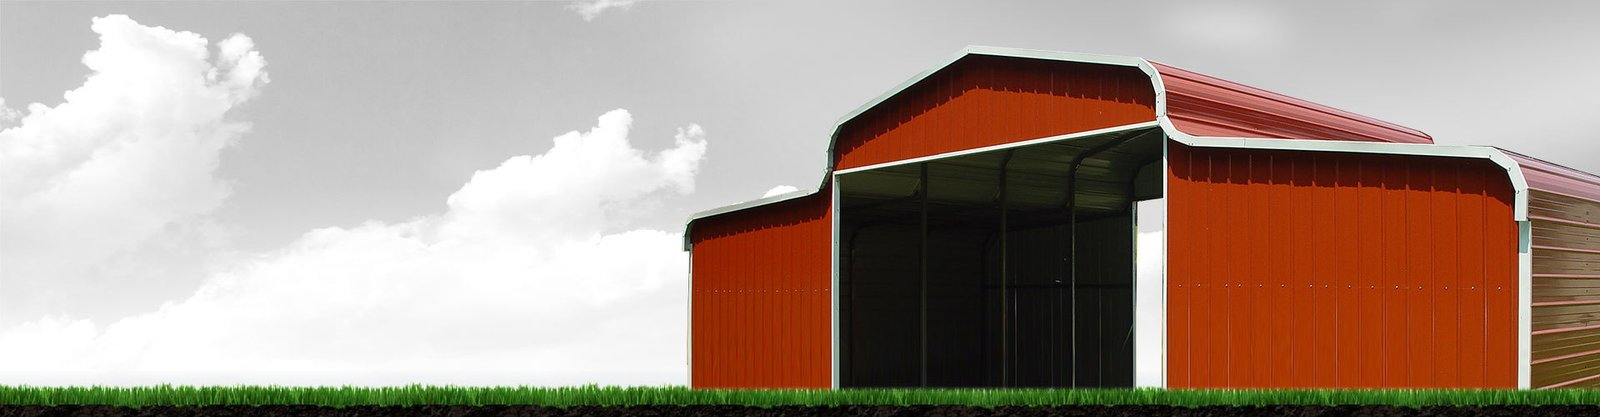 Elephant Barns gives the classic country-side red barn a modern spin, delivering pre-engineered metal buildings that can be customized to your specific needs.  Photo 7 of 11 in 10 Prefab Barn Companies That Bring DIY to Home Building